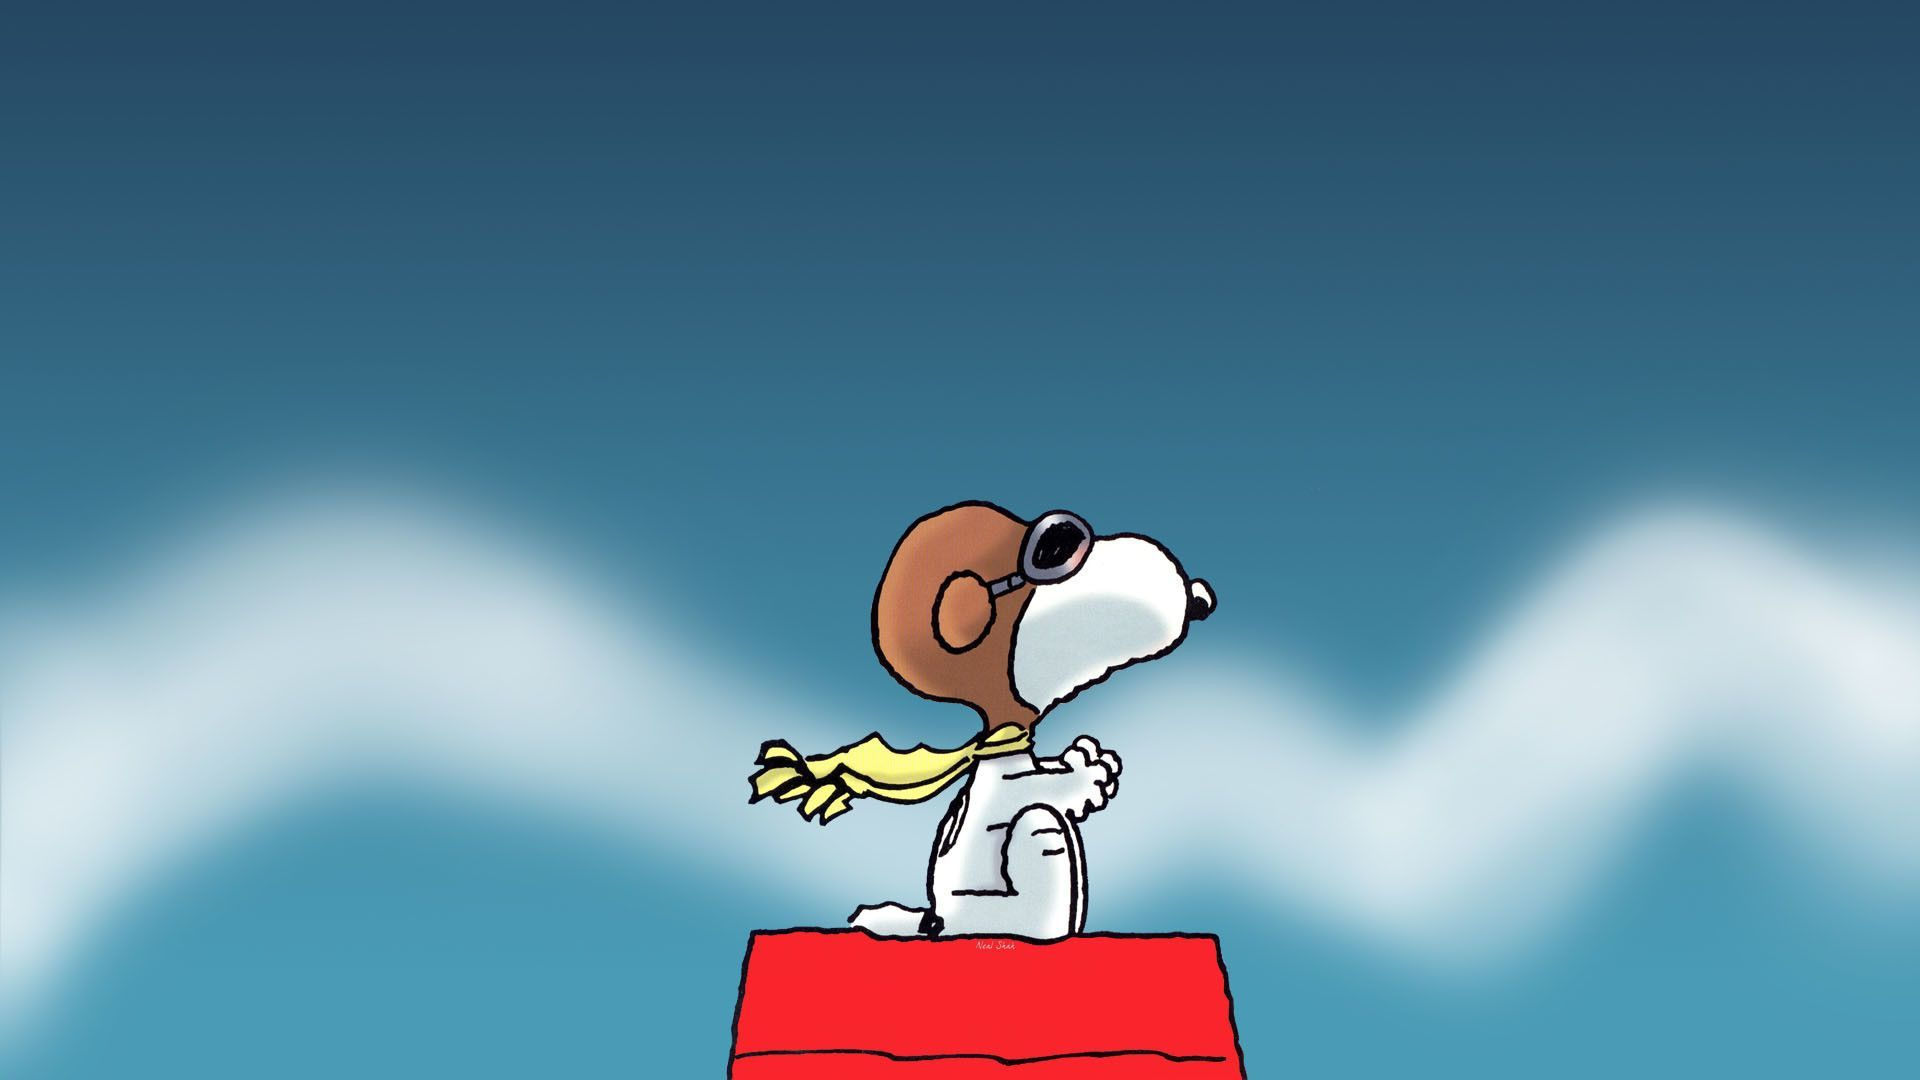 Snoopy Wallpapers Top Free Snoopy Backgrounds Wallpaperaccess